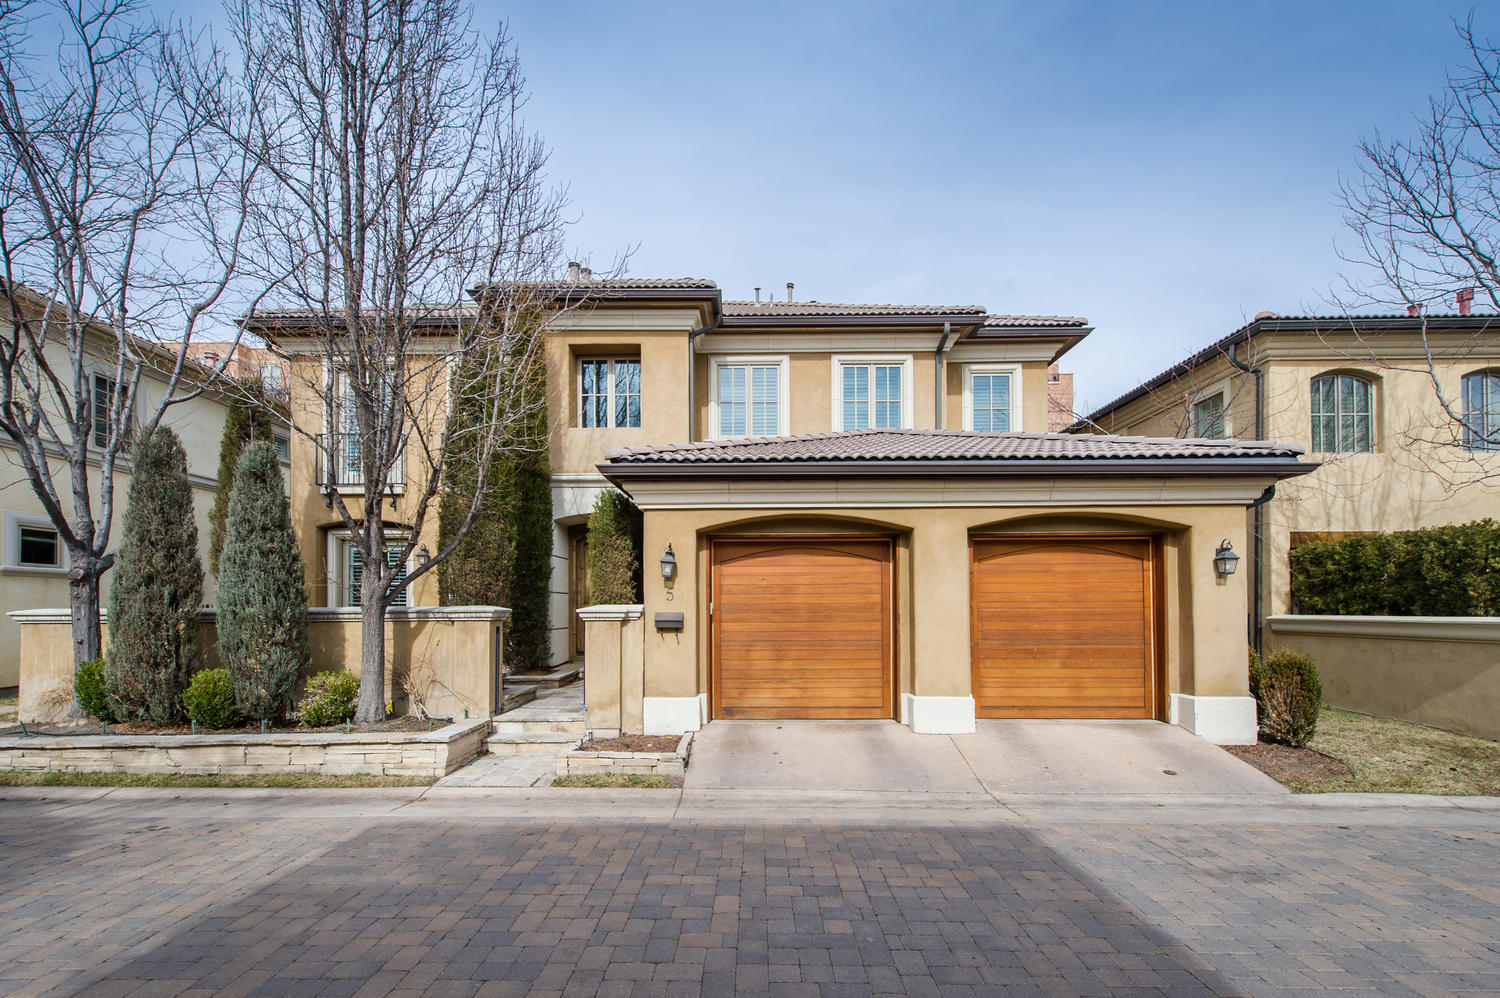 独户住宅 为 销售 在 Stunning European style residence in Cherry Creek's premier gated community 100 University Blvd #5 Cherry Creek, 丹佛, 科罗拉多州, 80209 美国